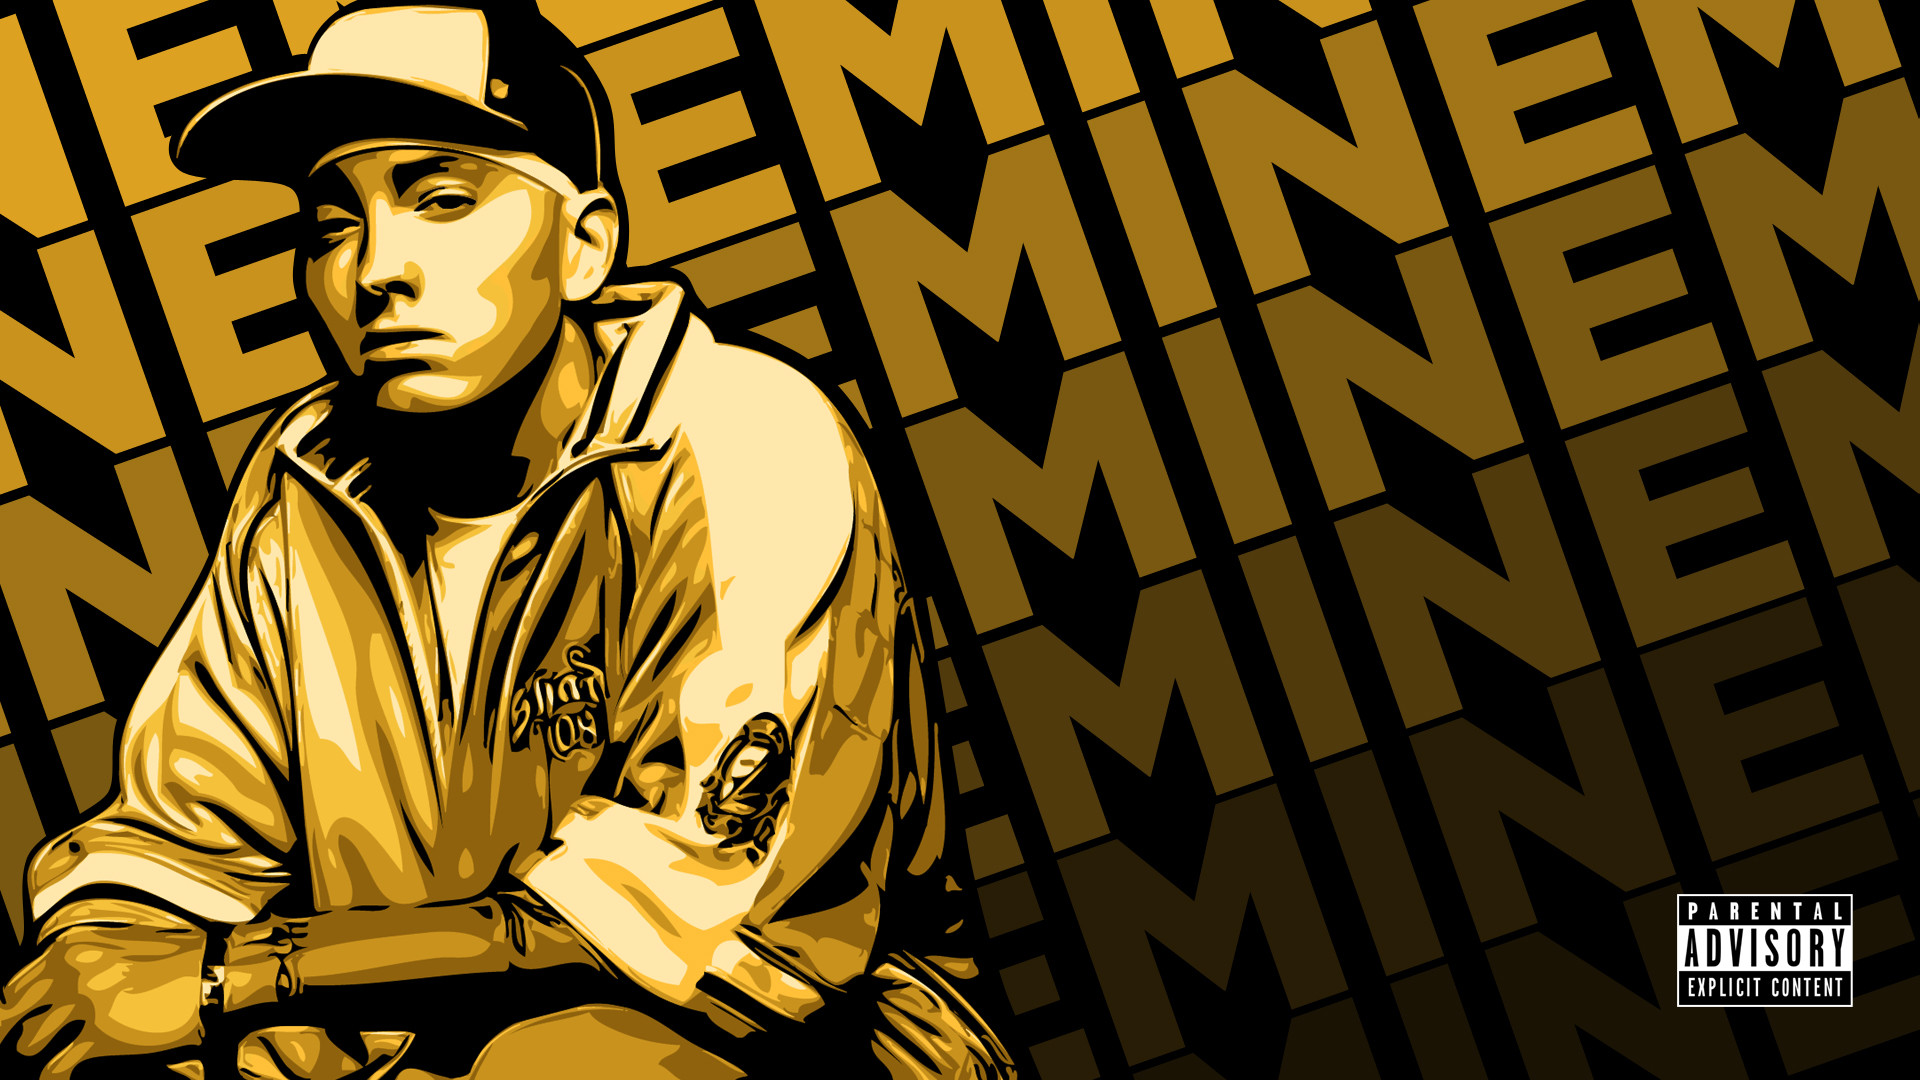 1920x1080 Eminem Wallpapers Not Afraid Wallpaper 1024×768 Eminem Wallpaper (58  Wallpapers) | Adorable